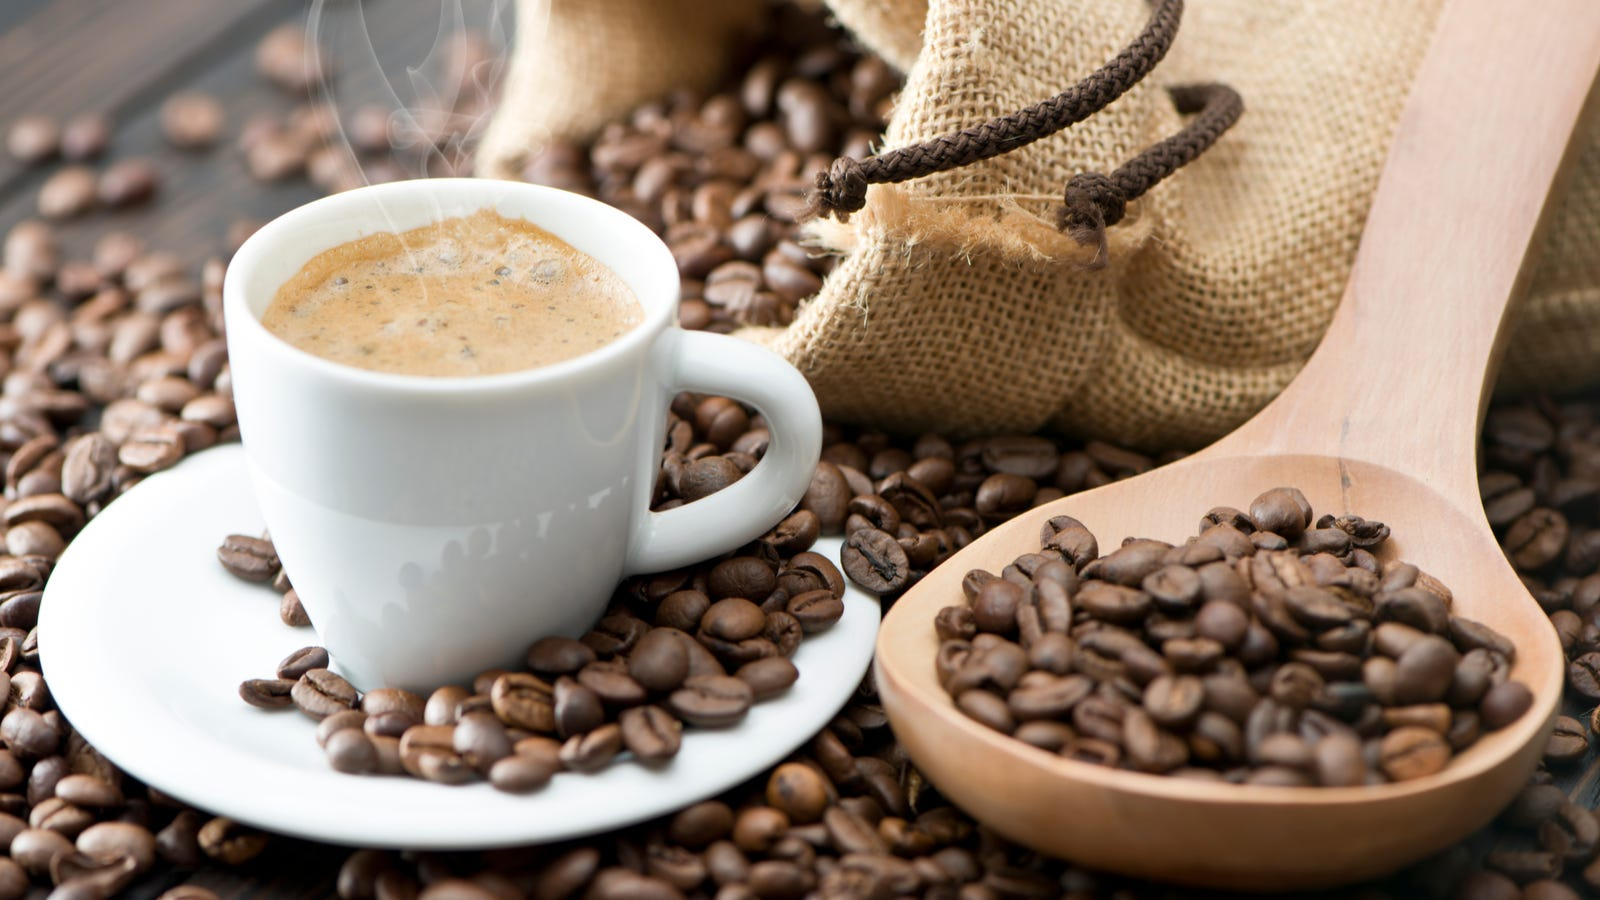 A cup of espresso next to coffee beans spilling out of a bag with a wooden spoon that has plenty of beans.